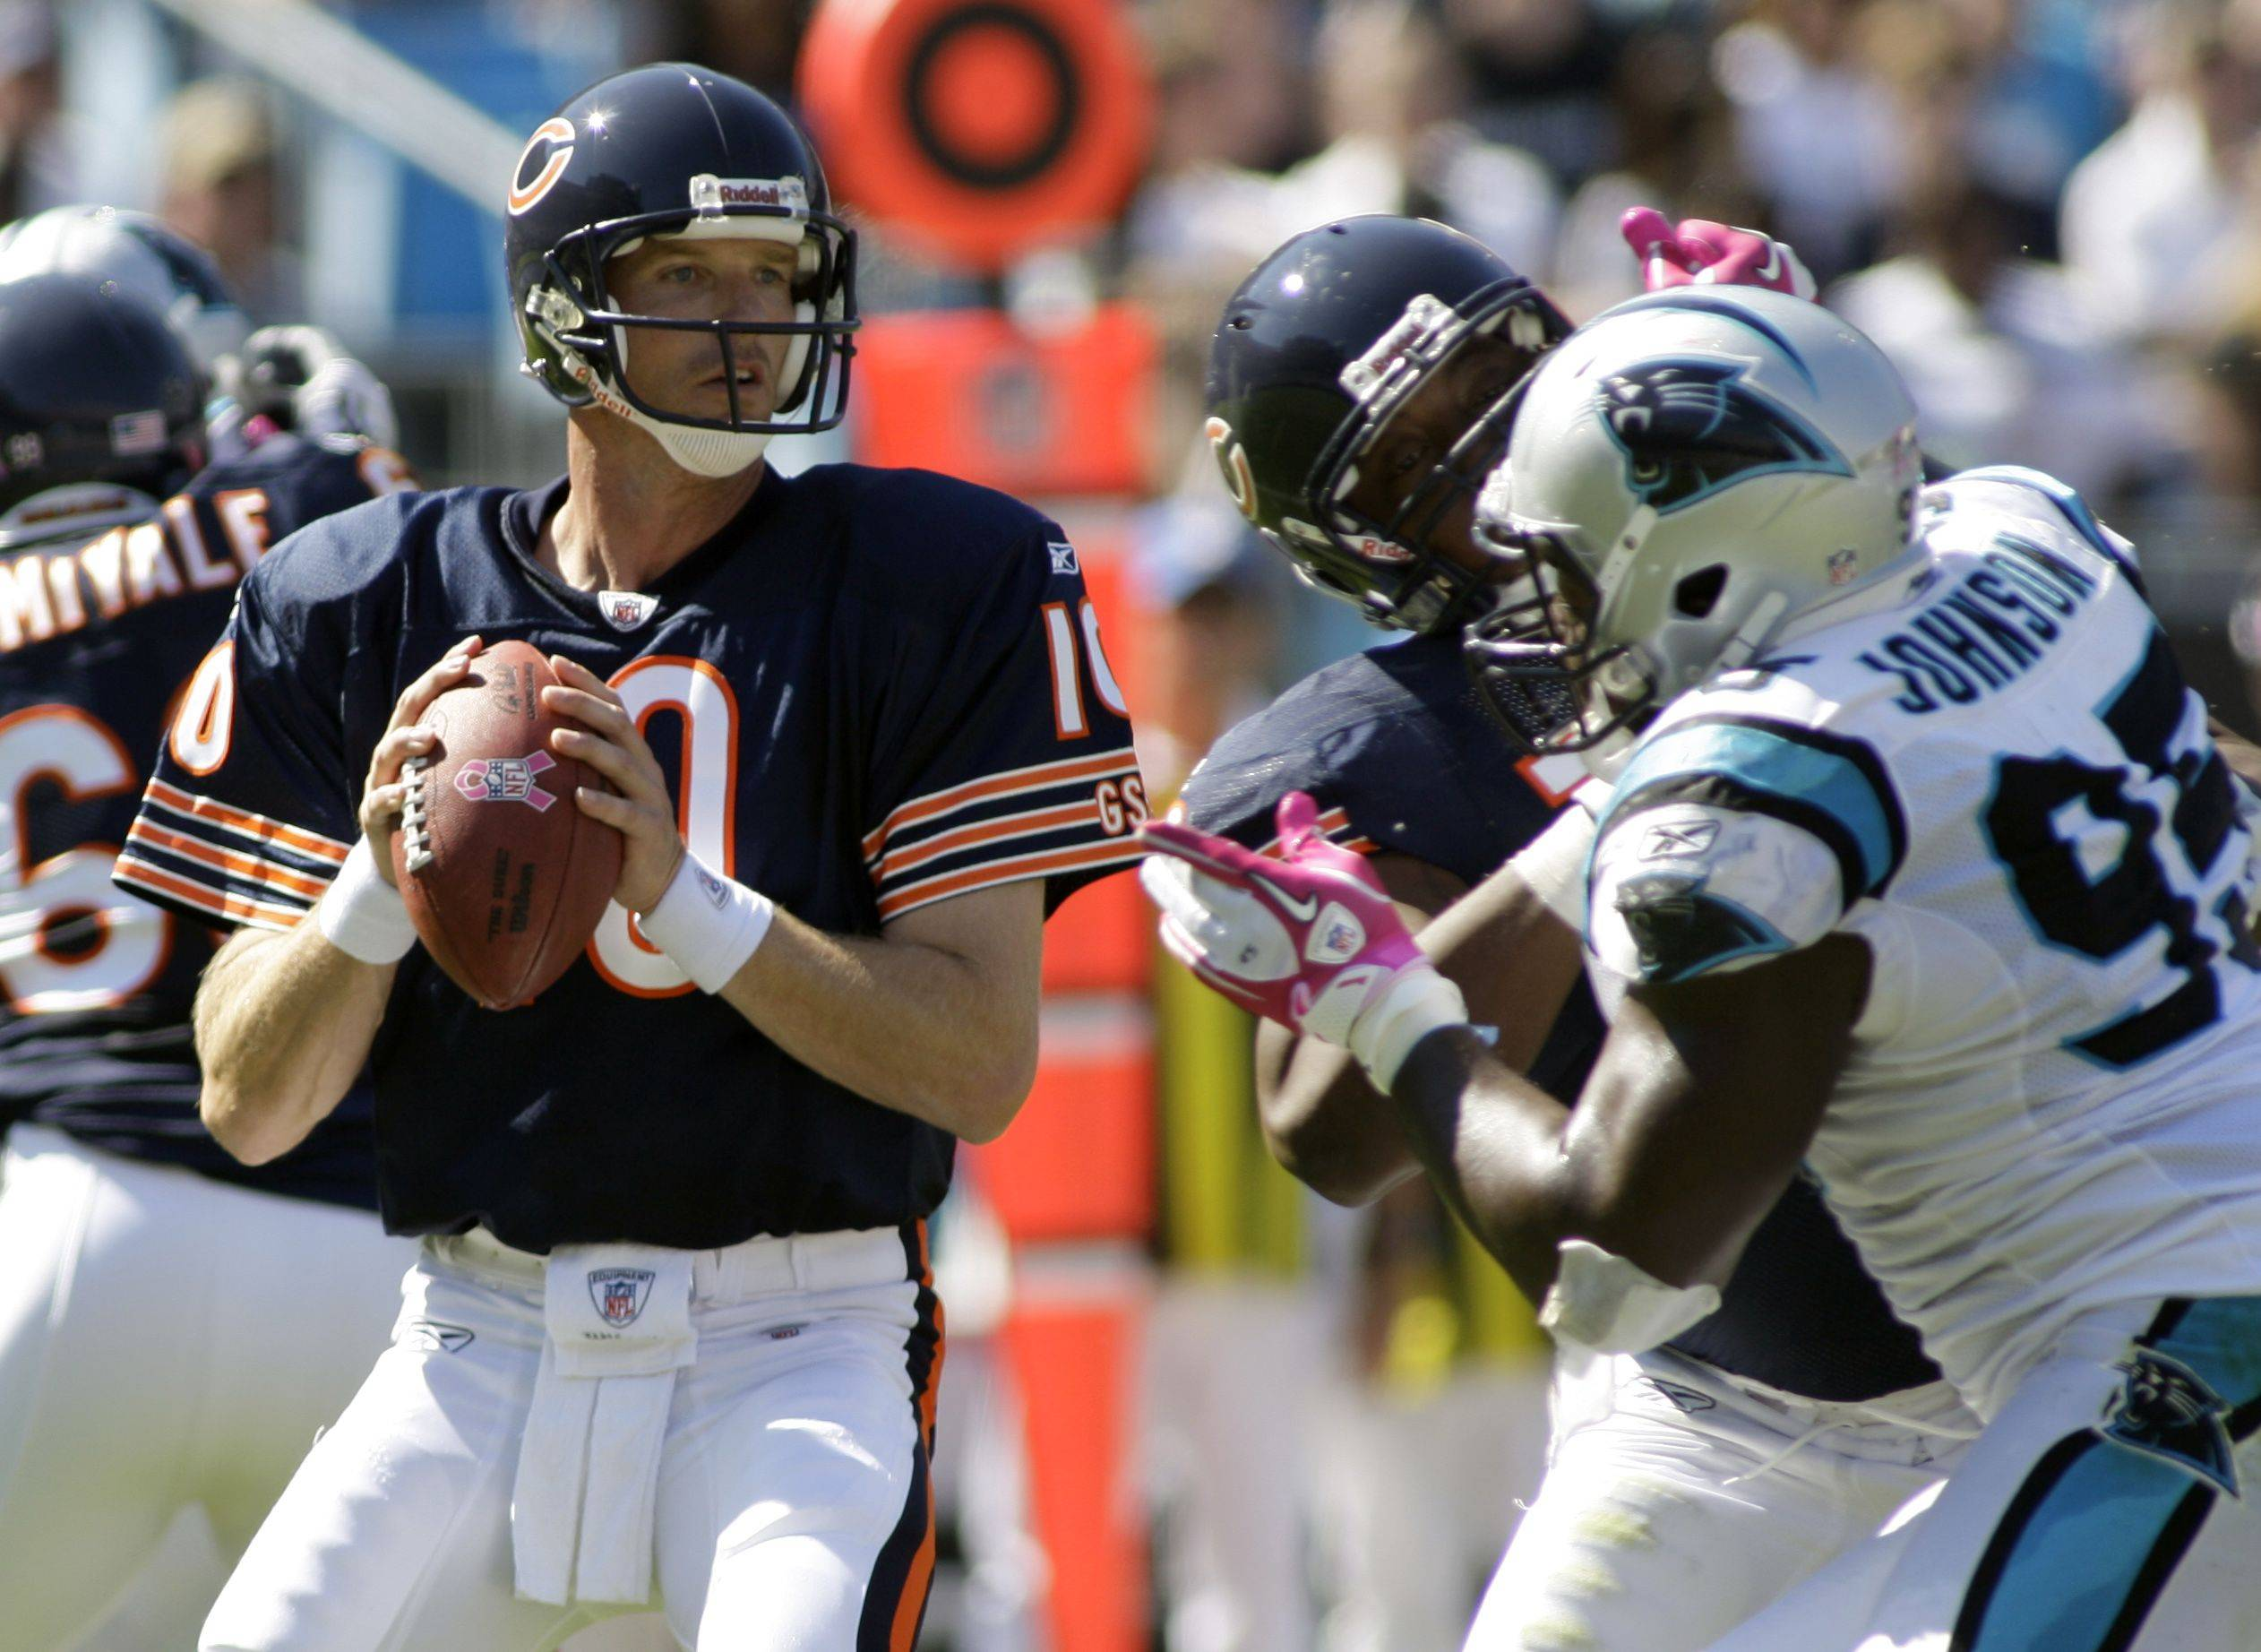 Chicago Bears quarterback Todd Collins looks to pass under pressure from Carolina Panthers' Charles Johnson in the first half.